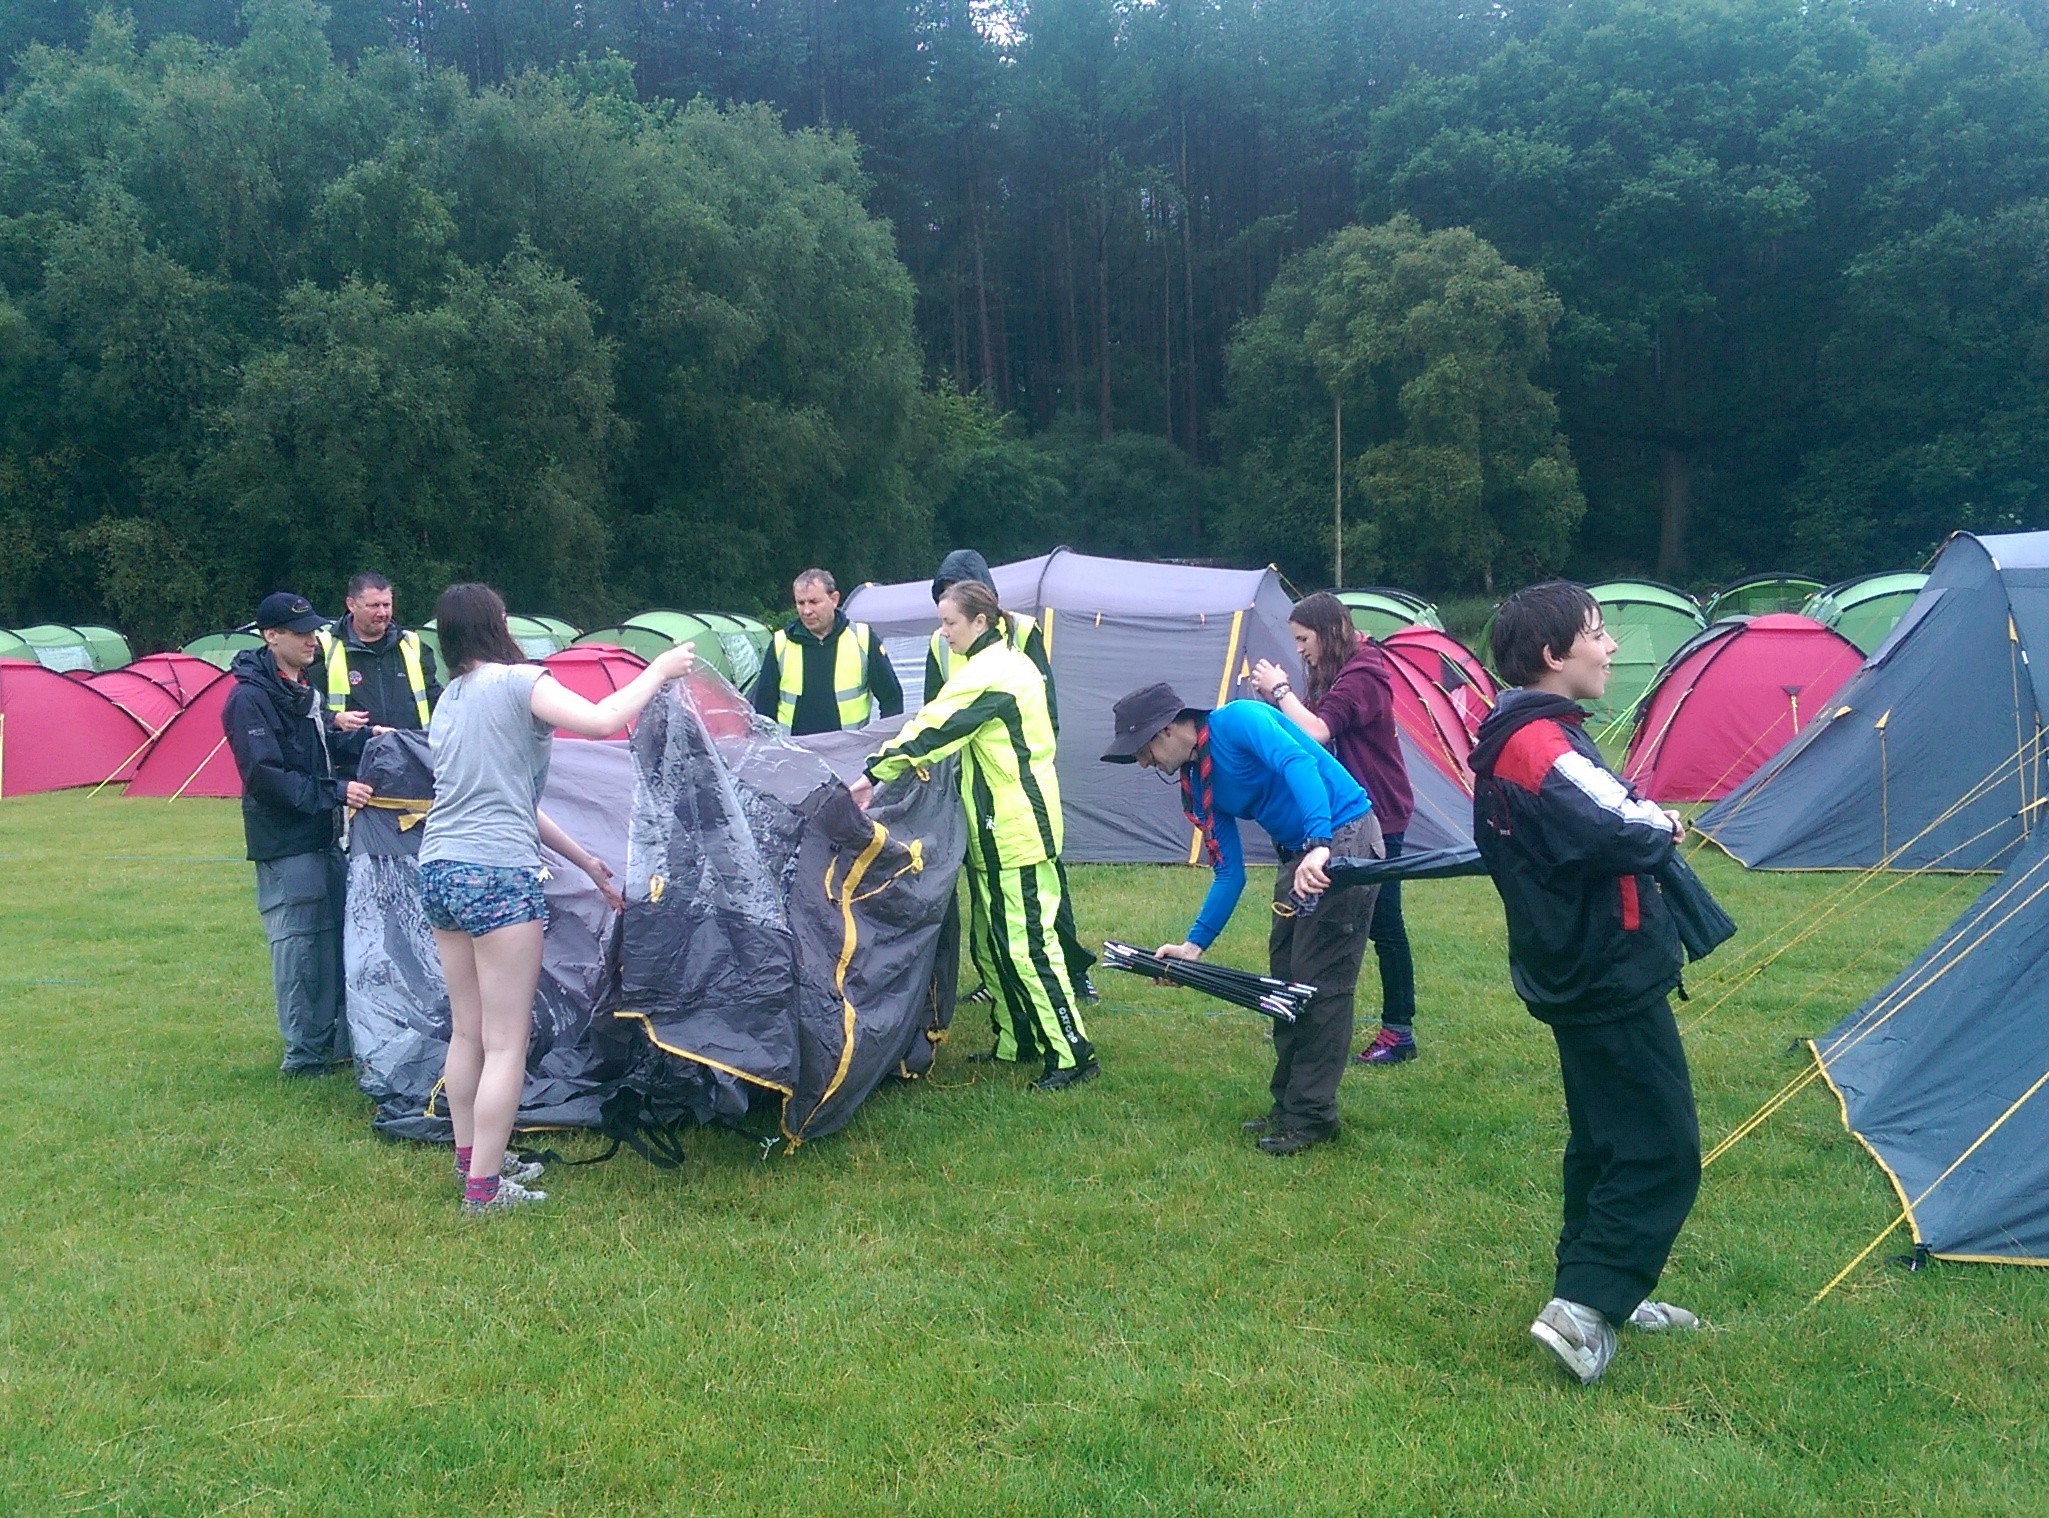 The Team putting up some of the Pre-pitched Tents - come rain or shine!